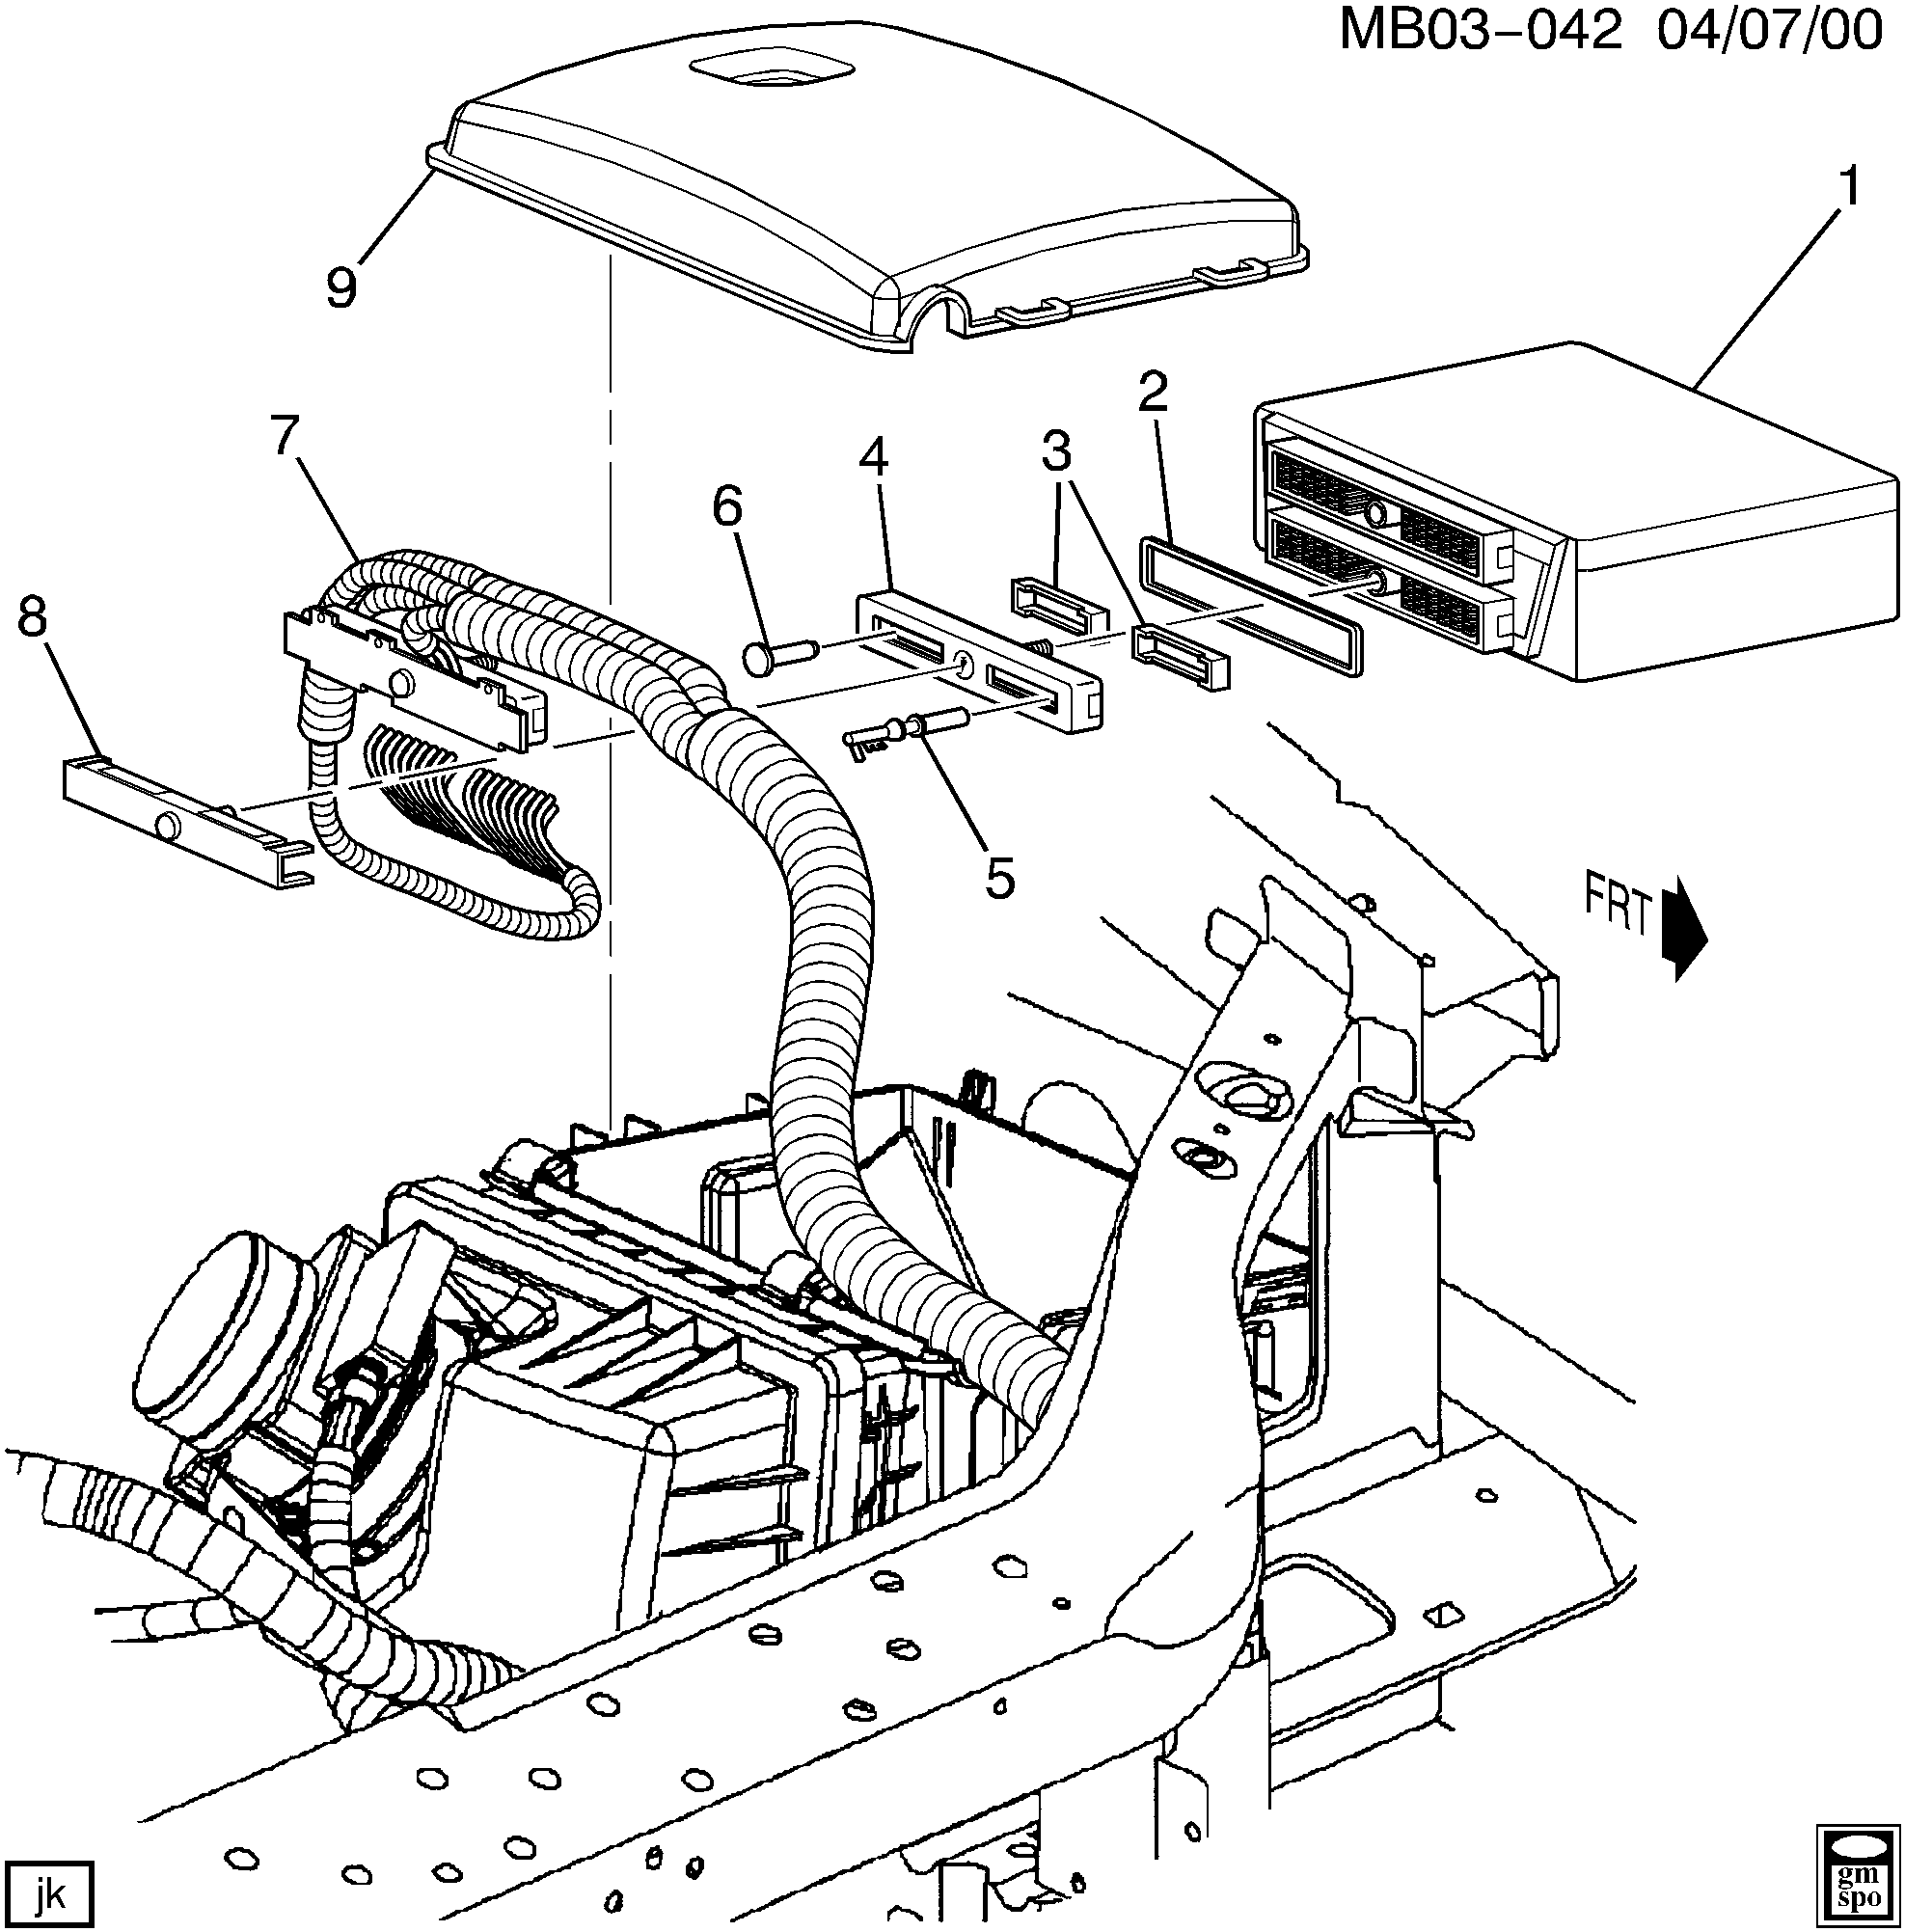 2003 Buick Lesabre Fuse Diagram - talk about wiring diagram on